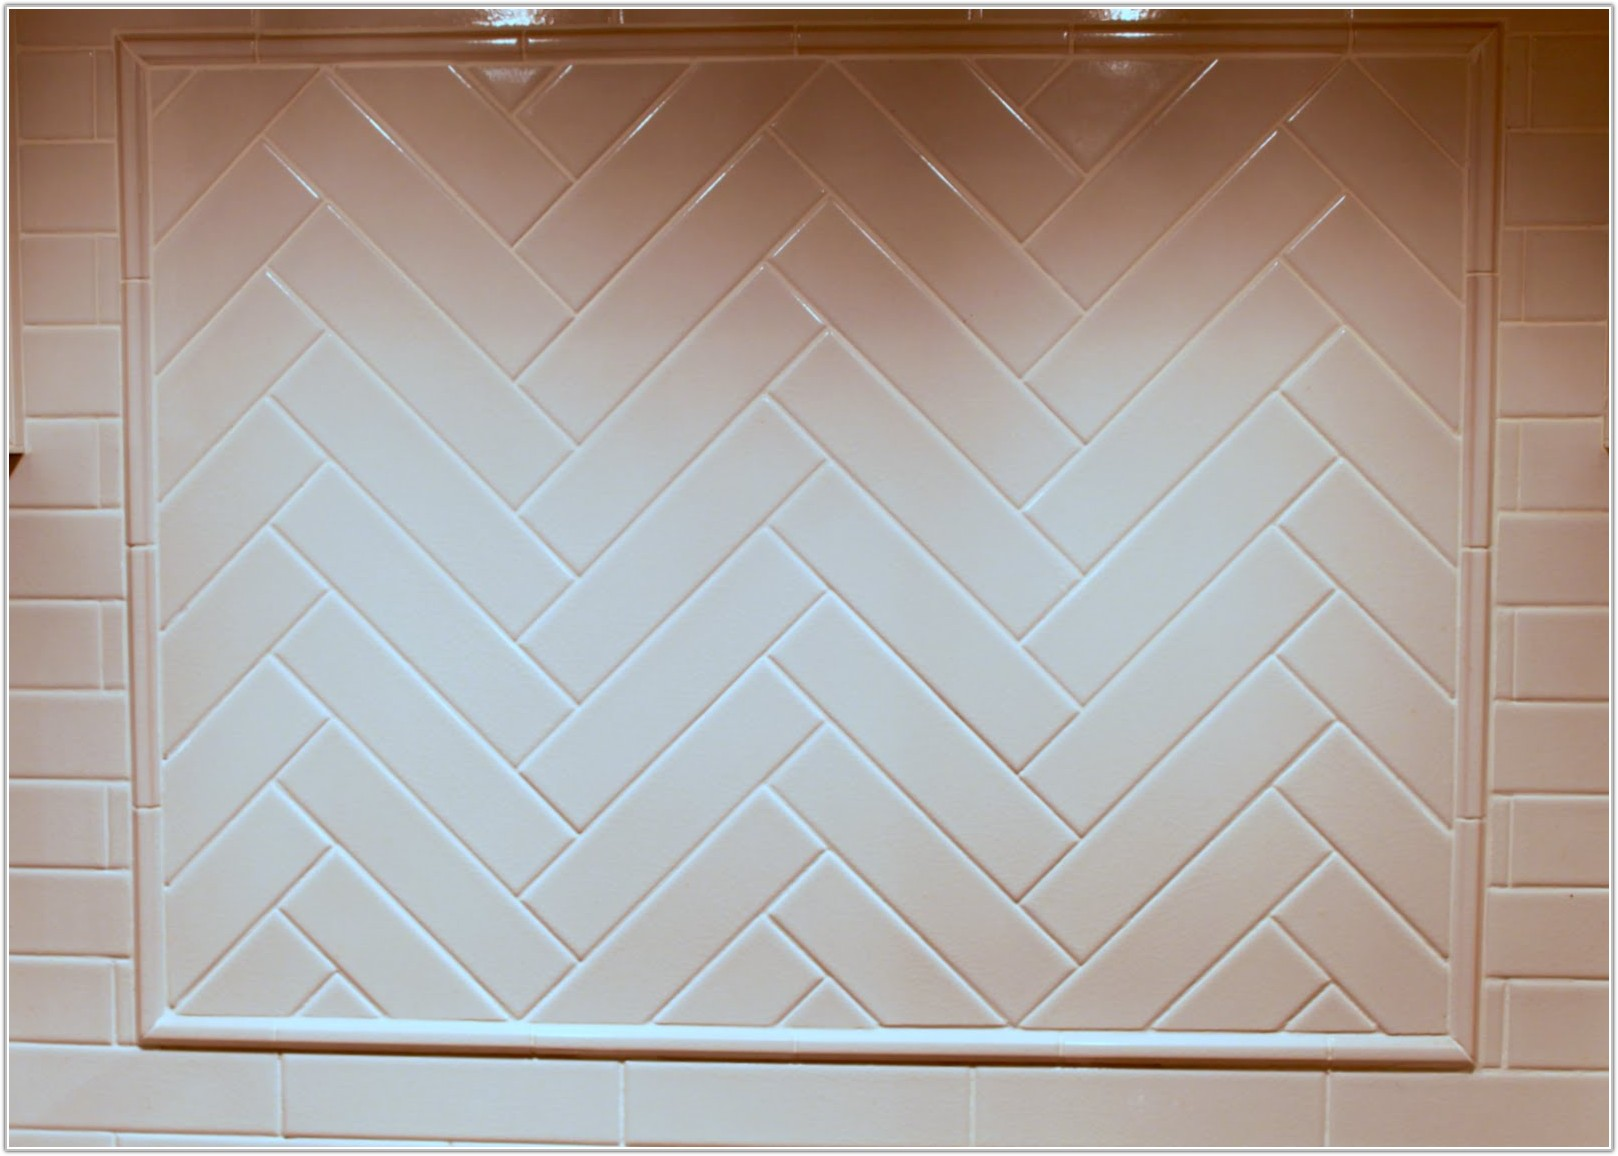 Subway Tile In Herringbone Pattern